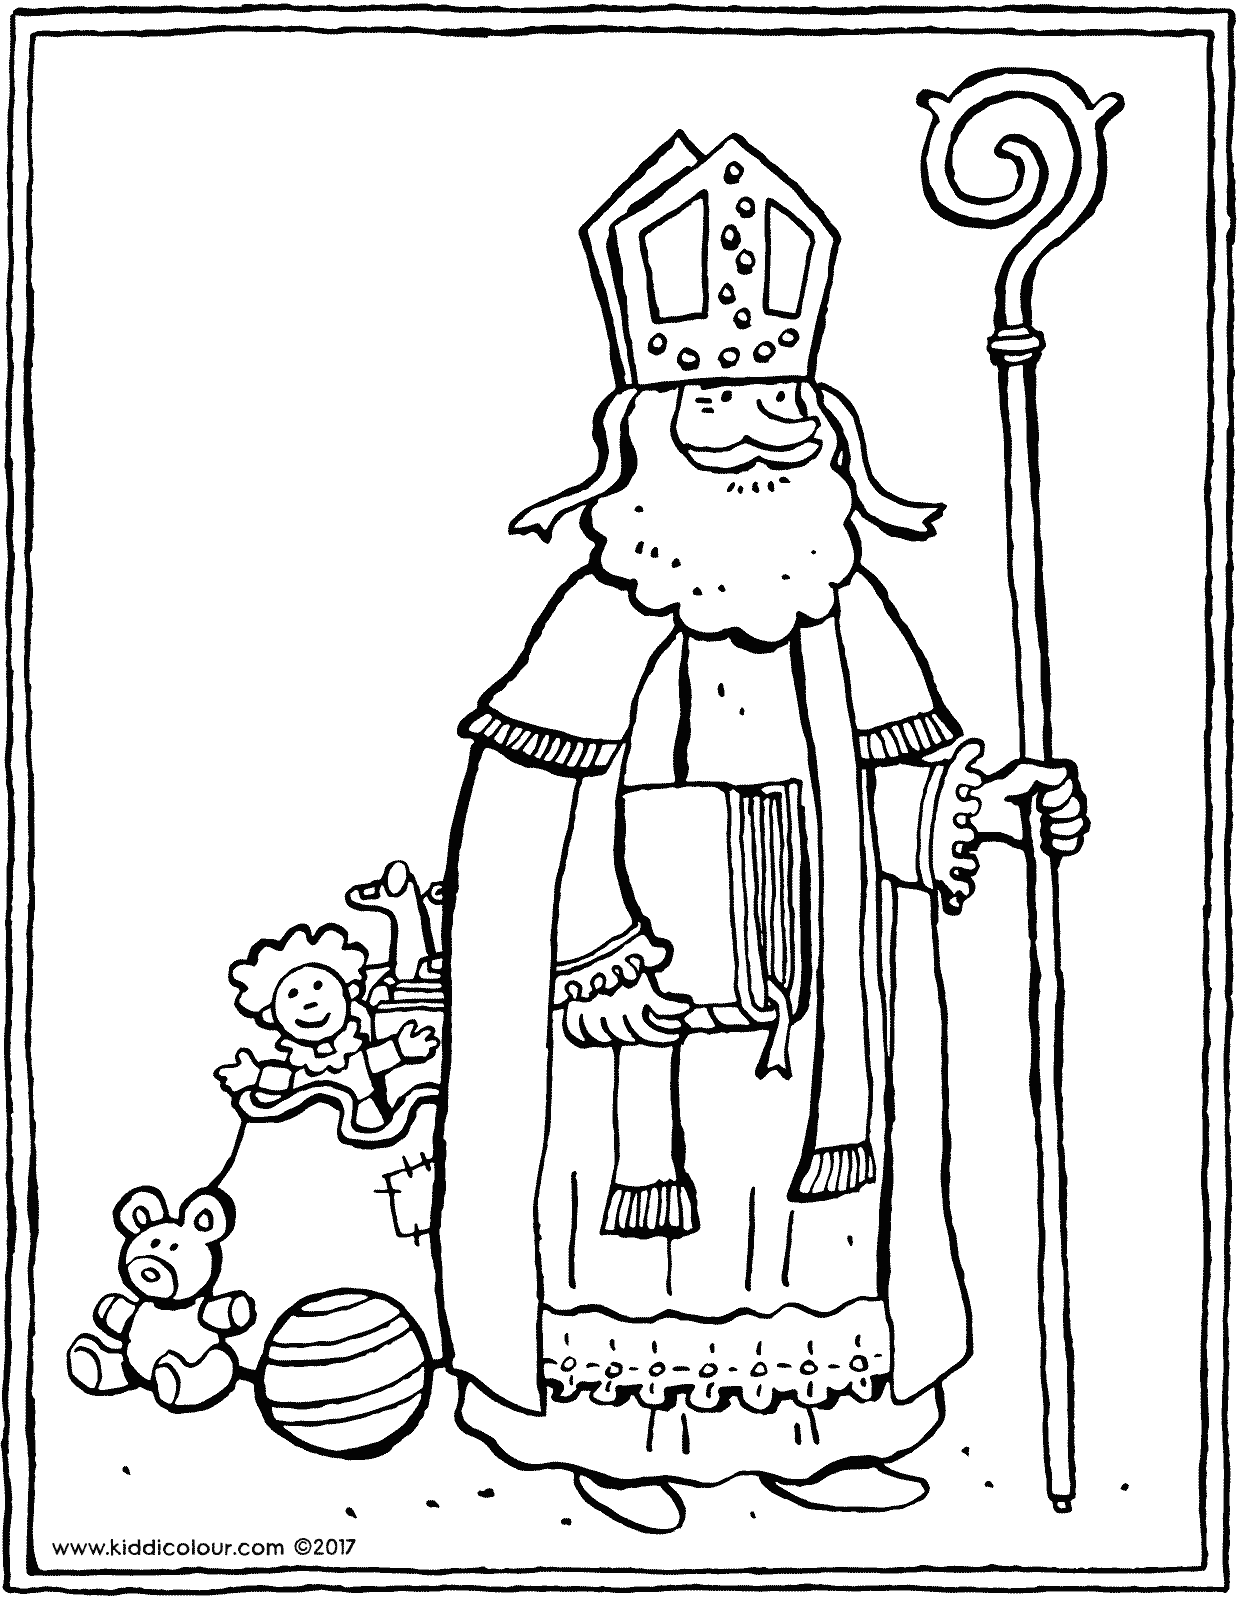 Saint Nicholas Coloring Pages Free Coloring Pages Download | Xsibe ...